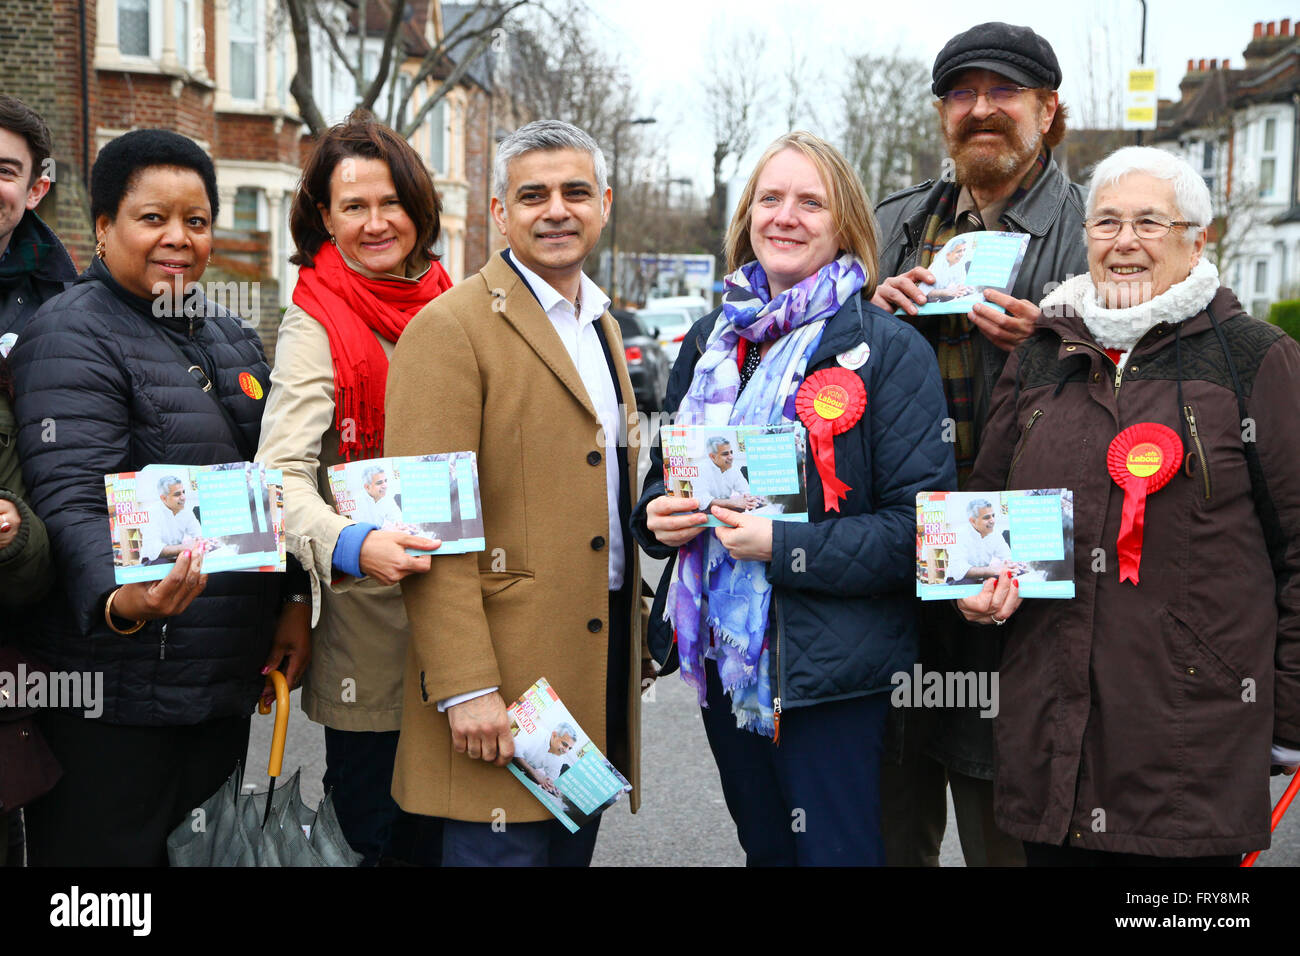 Tottenham, London, UK. 24th March, 2016. Sadiq Khan, Labour candidate for Mayor of London joins Joanne McCartney, - Stock Image